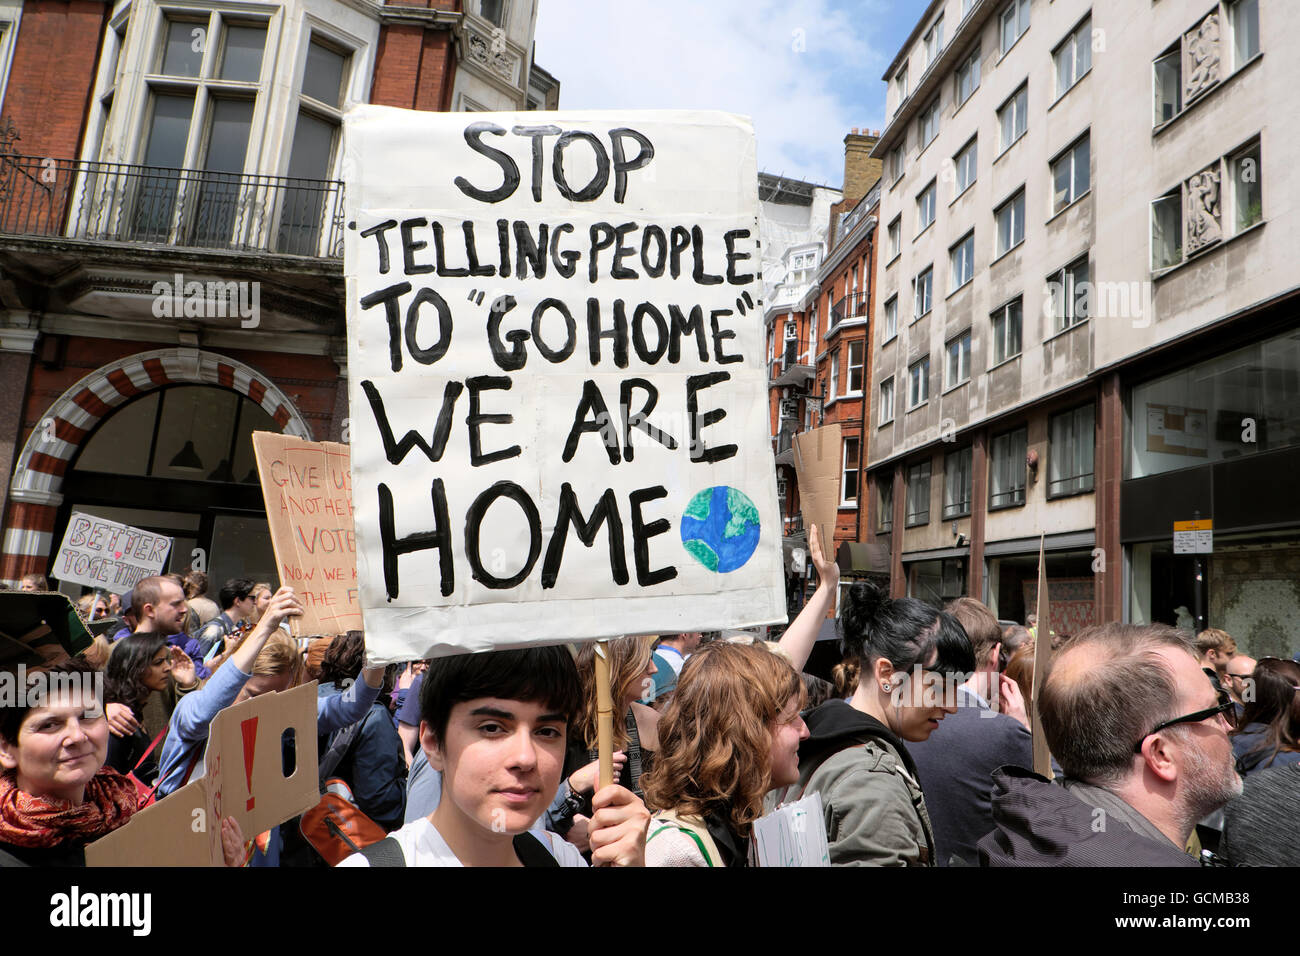 Stop Telling People to  'GO HOME'  sign  'WE ARE HOME'  poster at the  'March for Europe' - Stock Image